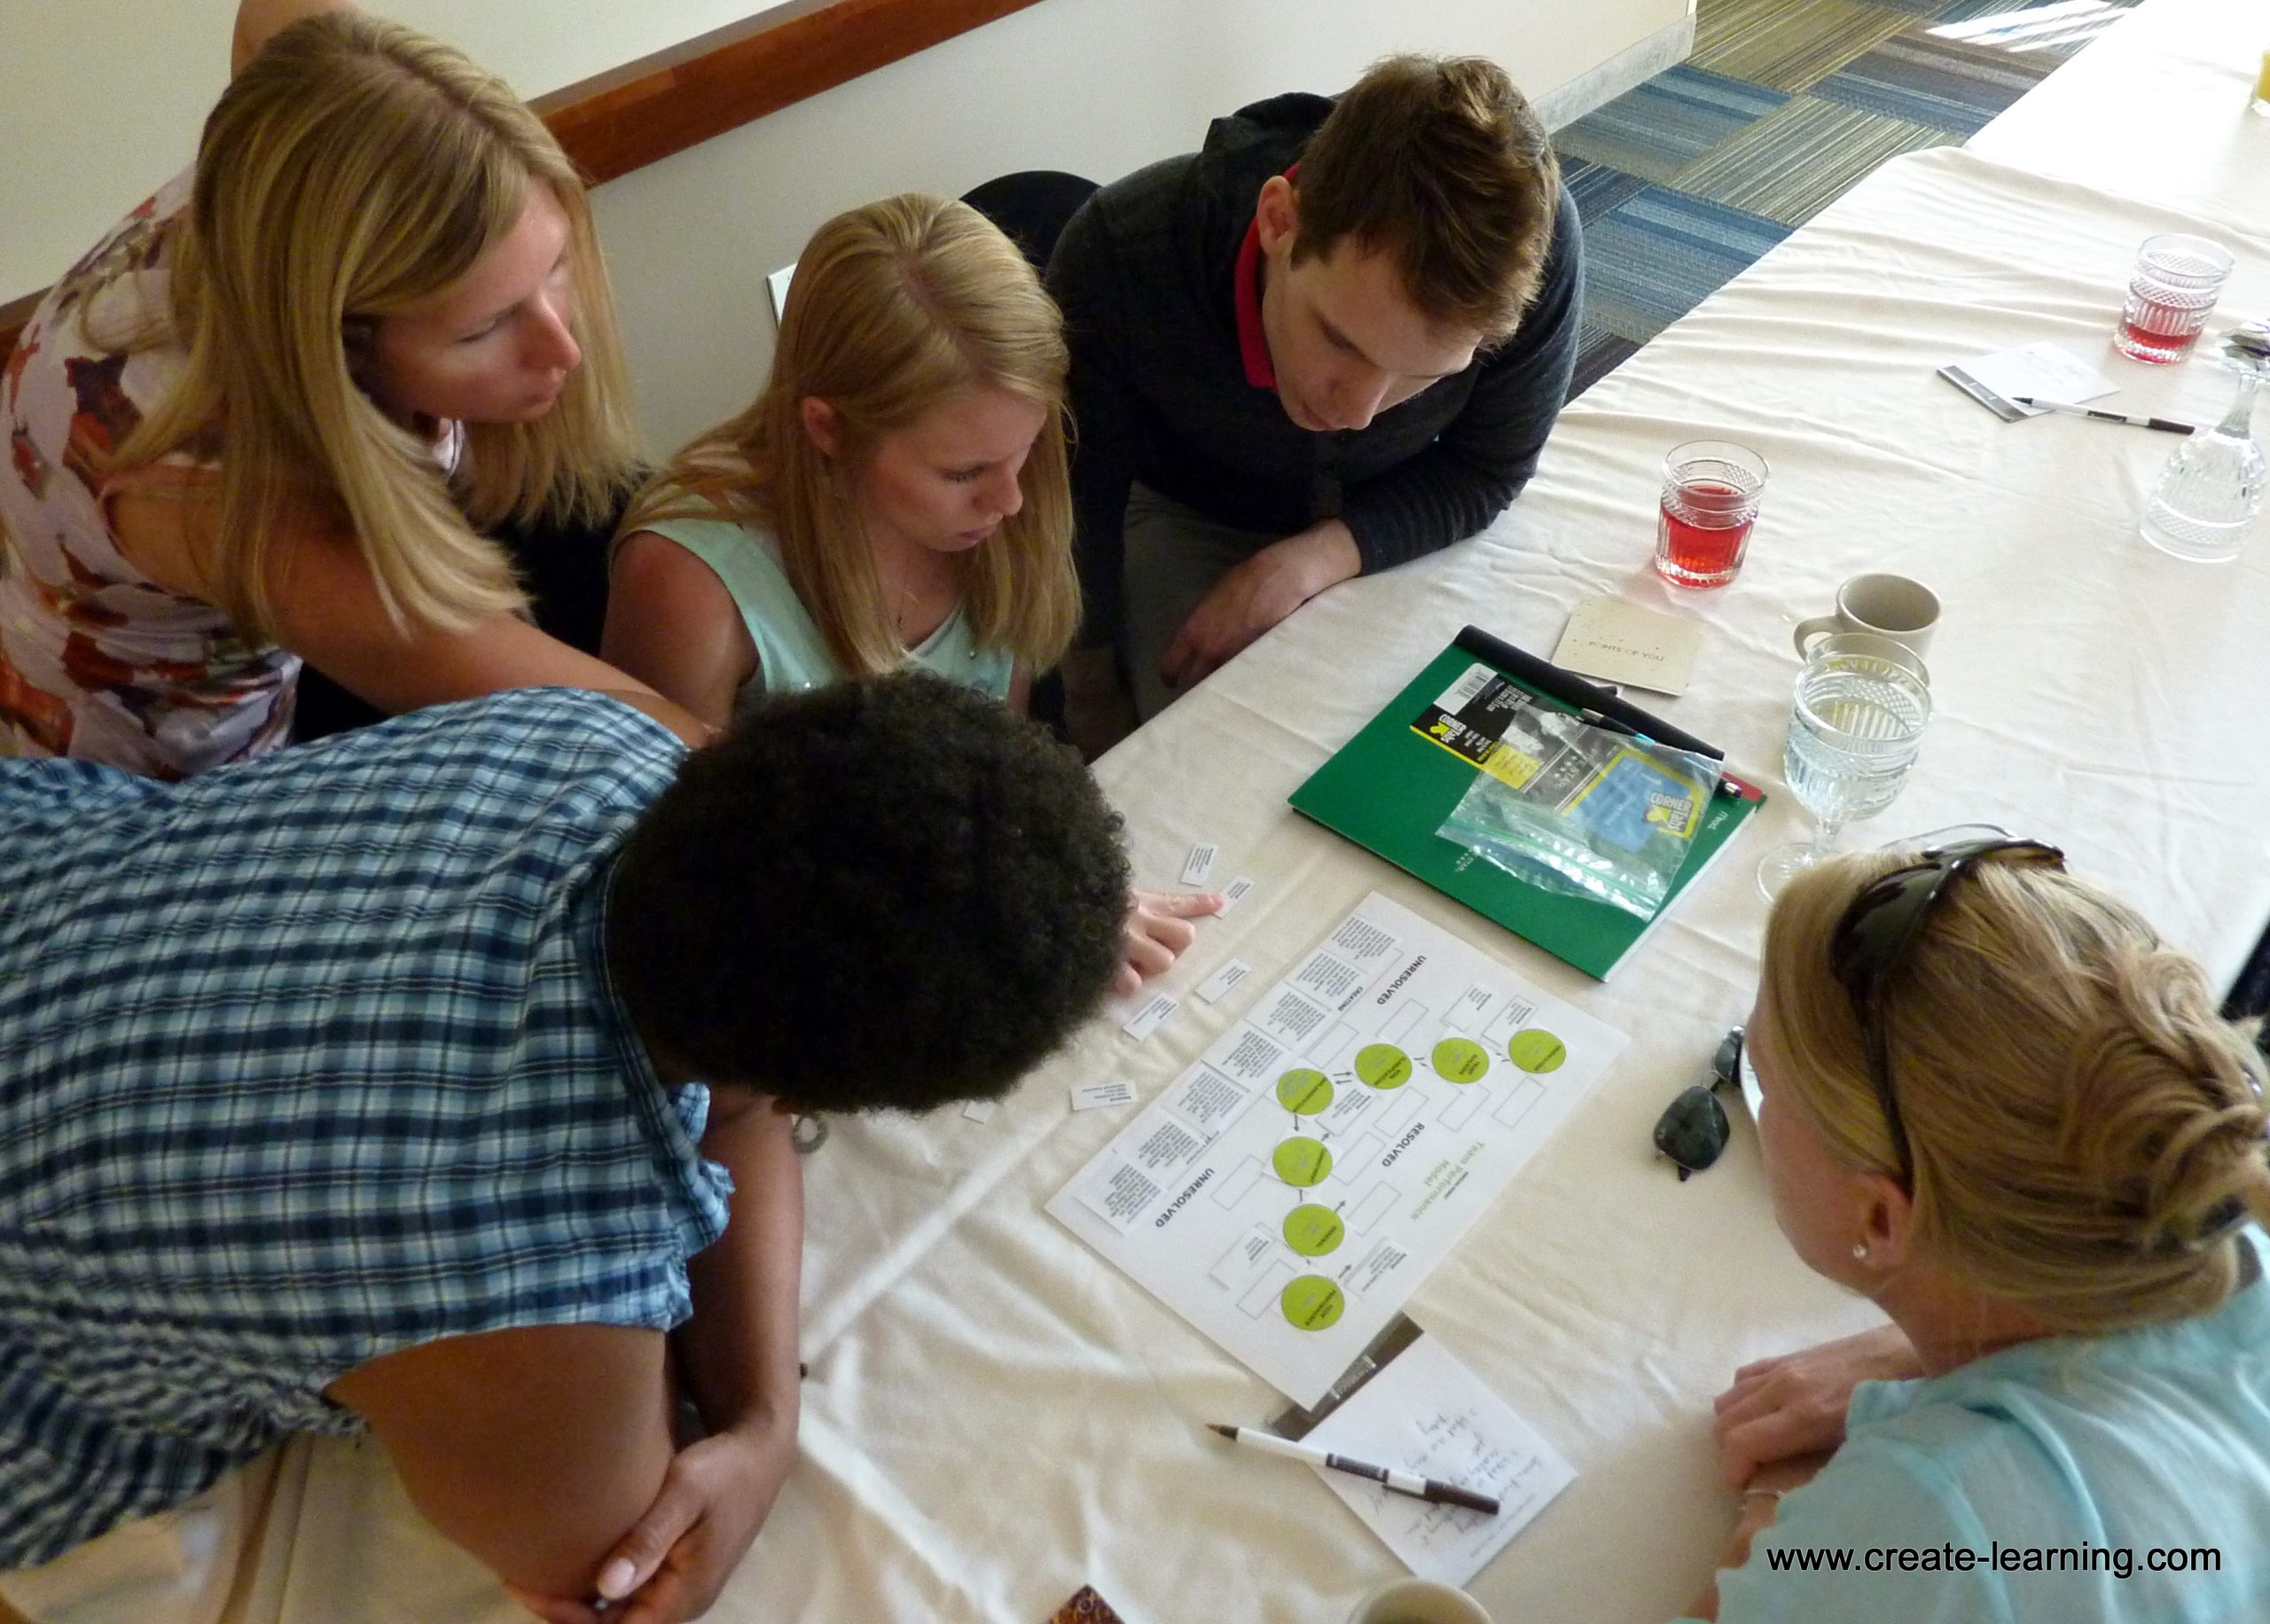 Three ways to involve your participants